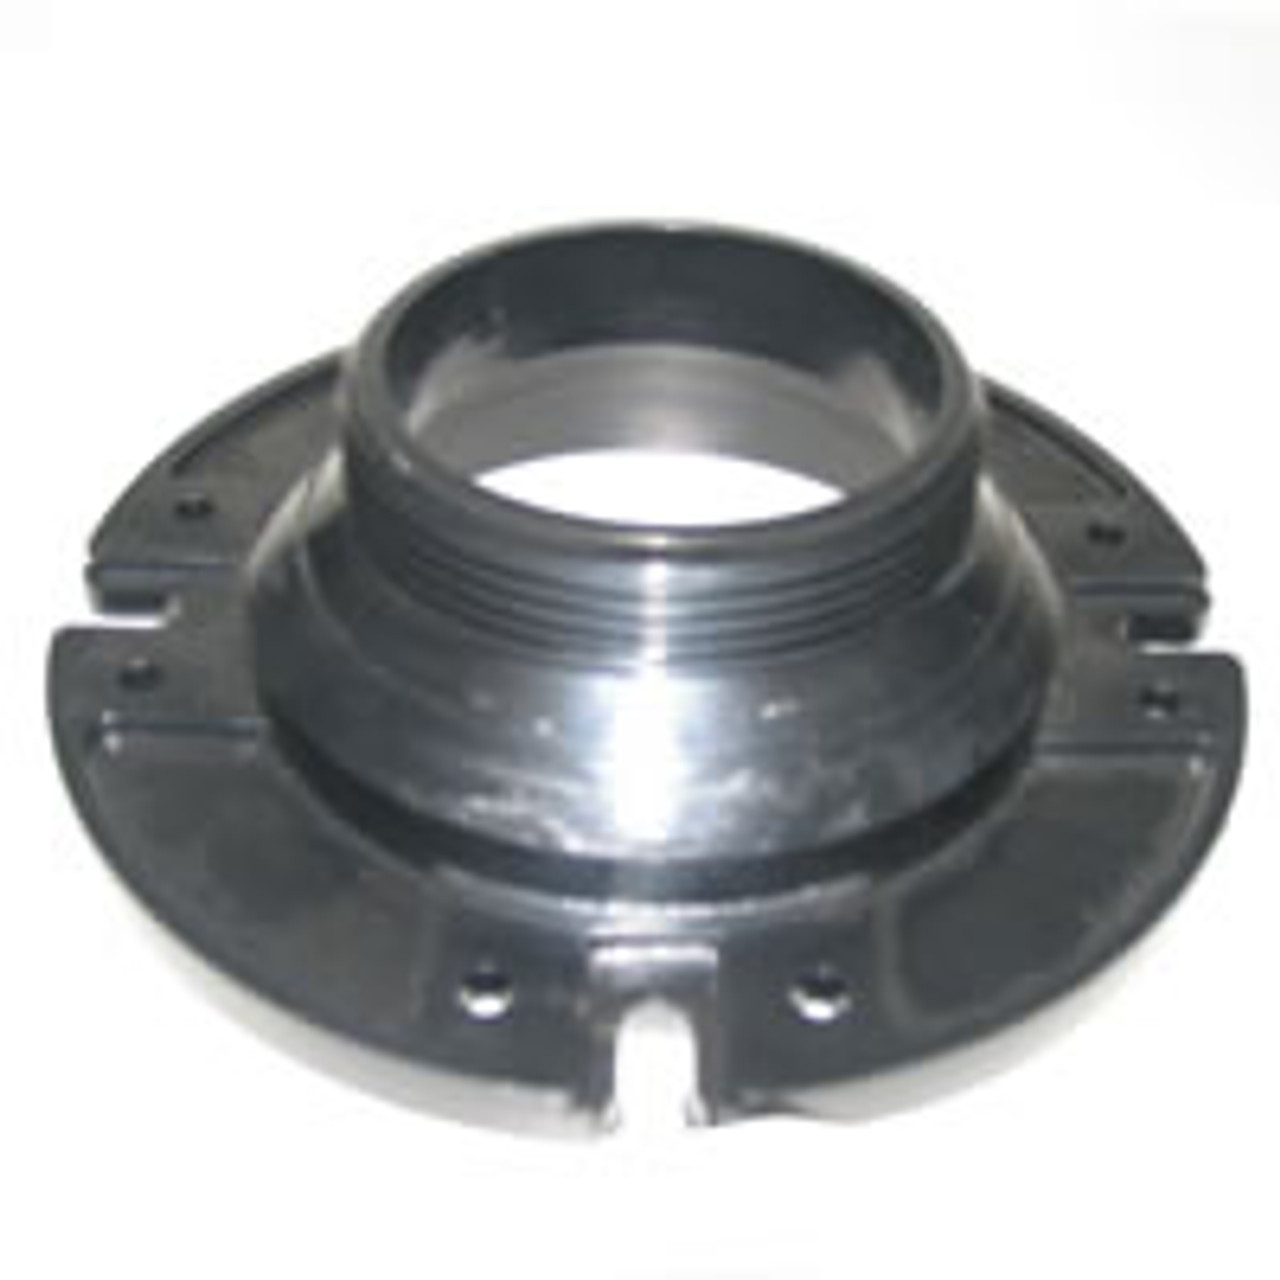 "Toilet mounting floor flange, 3"" Male Pipe Thread."